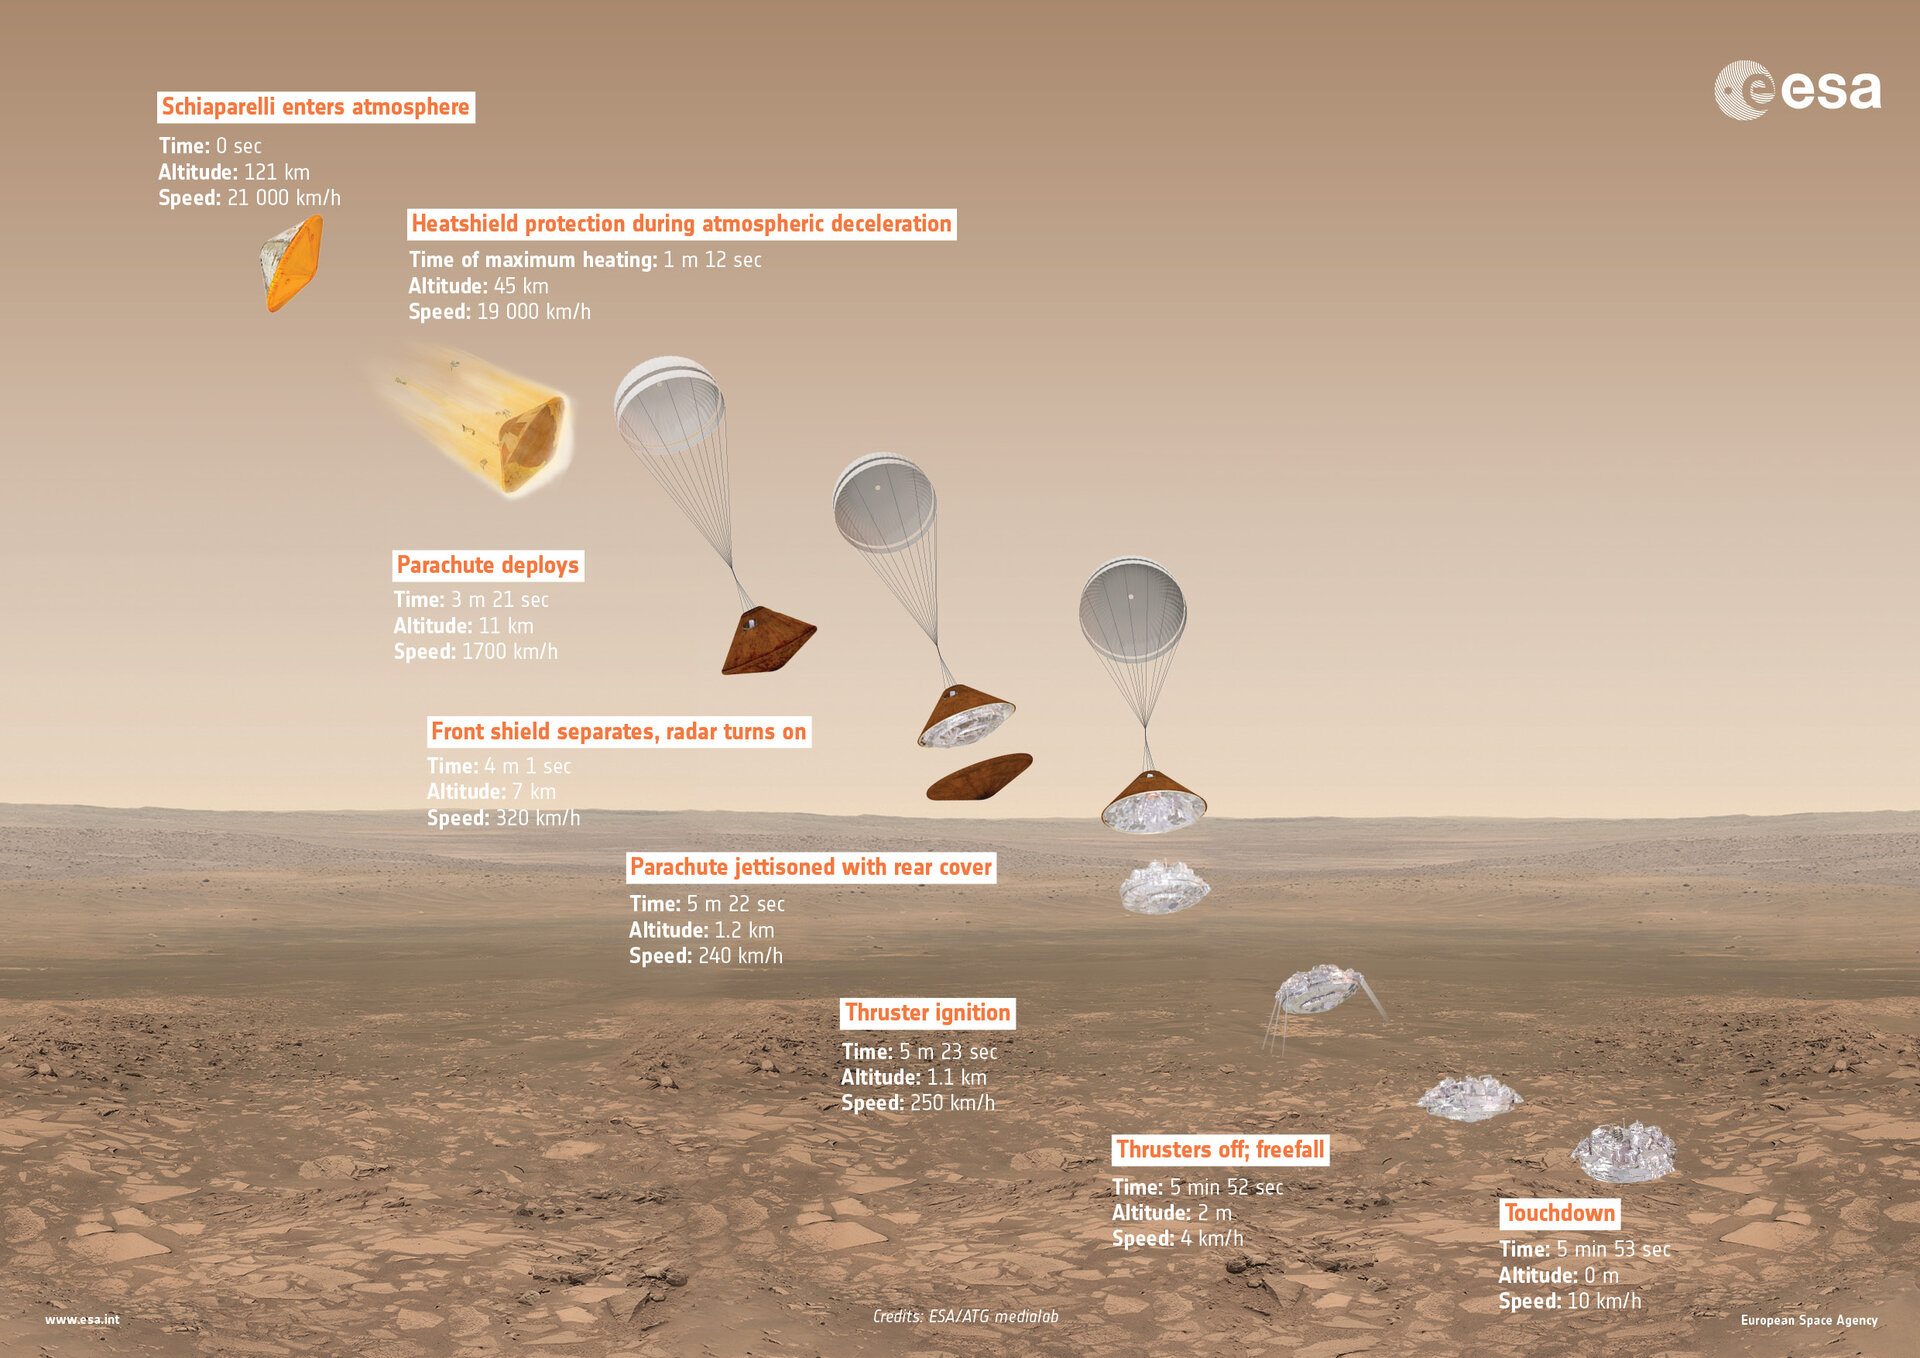 ExoMars 2016 Schiaparelli descent sequence